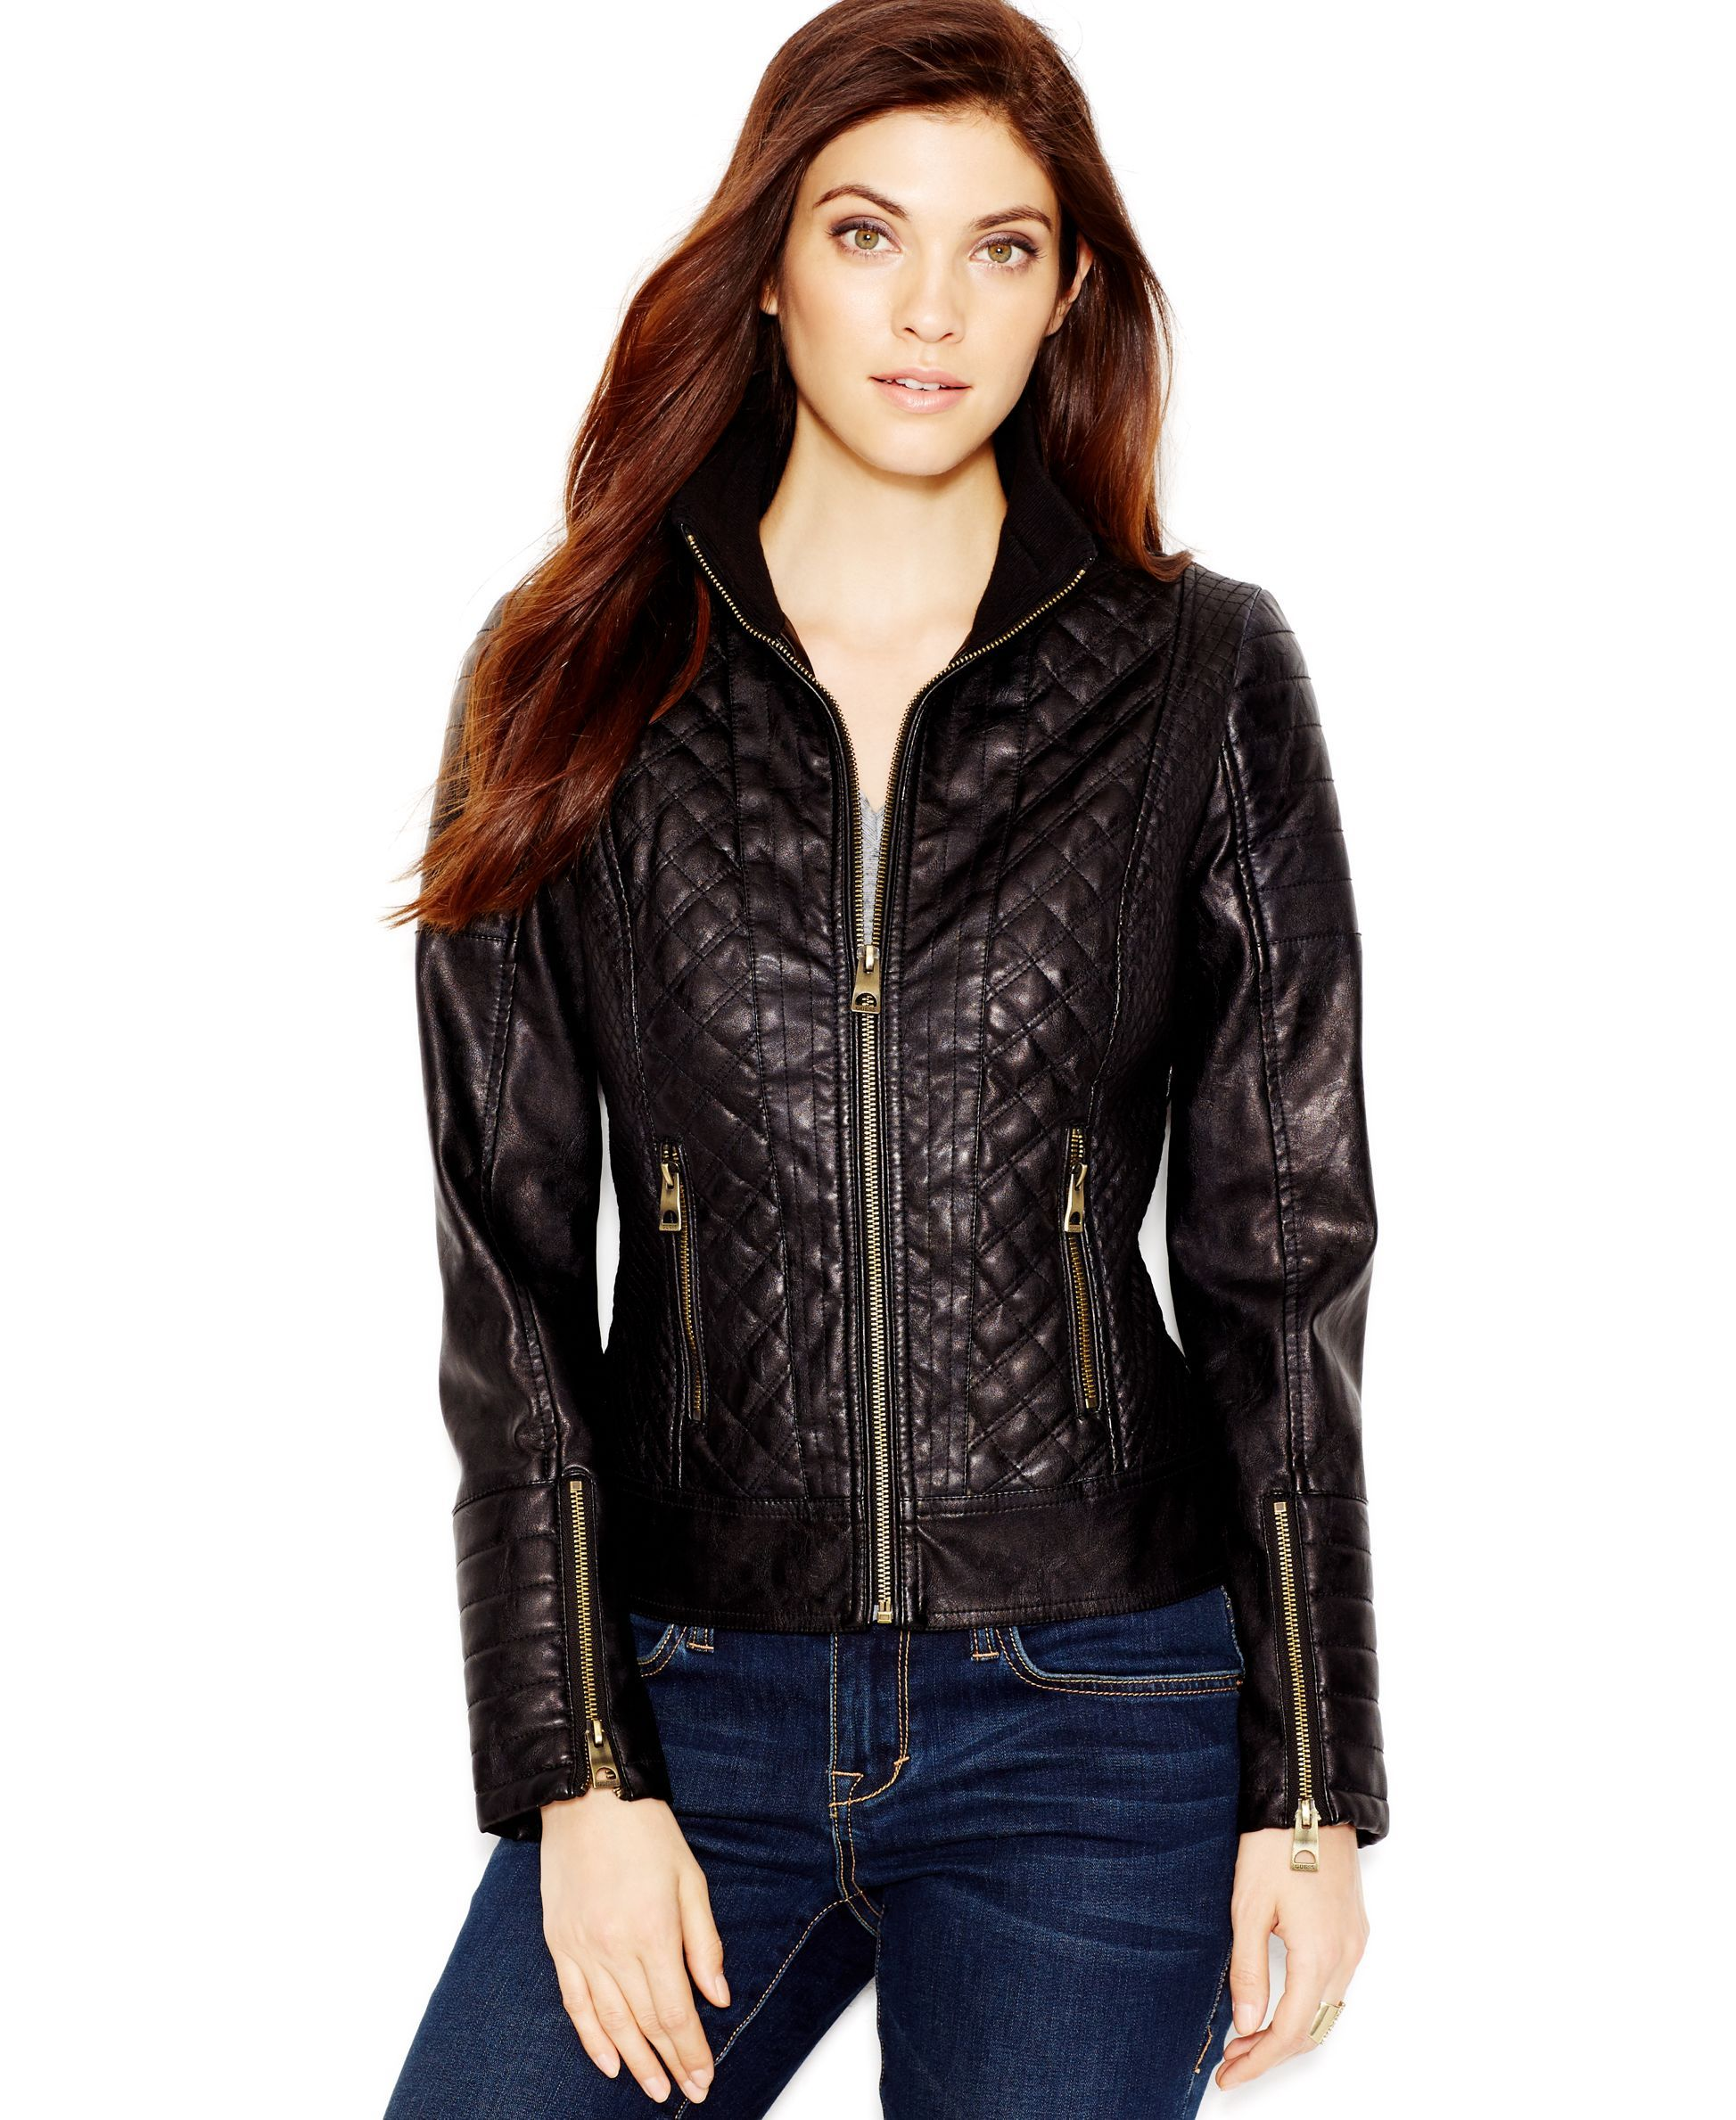 moto jacket leather pin lane sarah bryant dkny faux quilted by quilt jeans